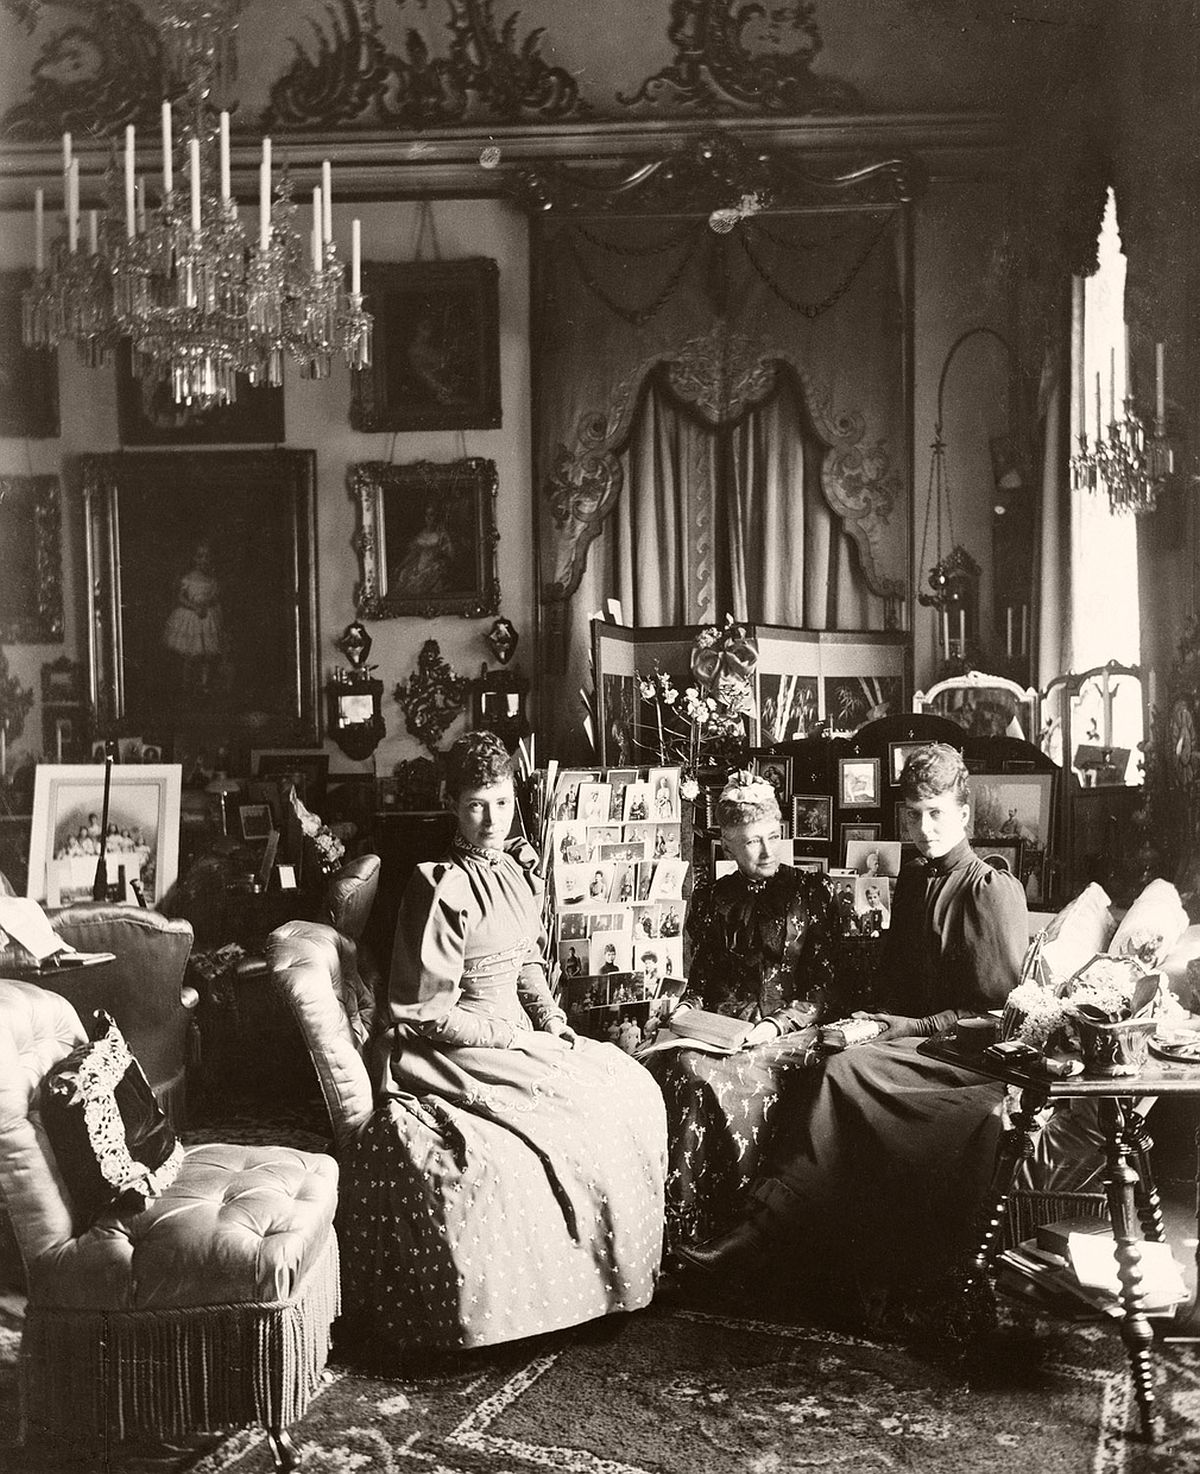 Mary Steen (1859-1939), Empress Marie Feodorovna of Russia, Queen Louise of Denmark, Alexandra, Princes of Wales, Amaliensborg, May 1892